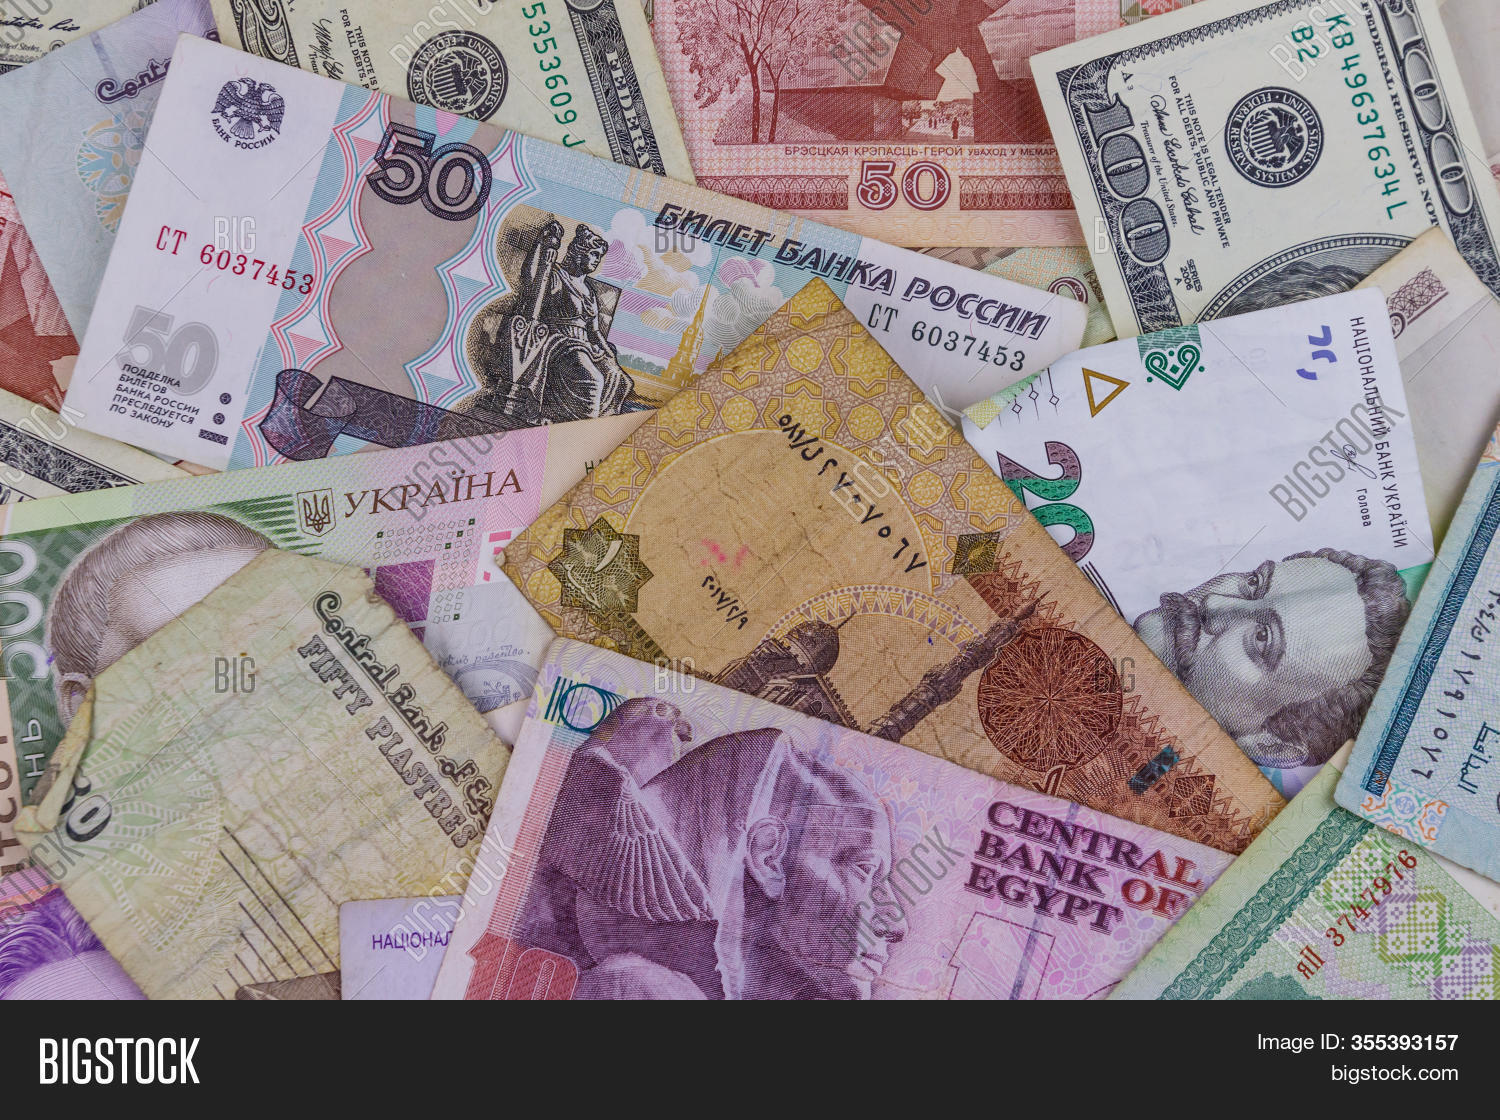 Multicurrency Image Photo Free Trial